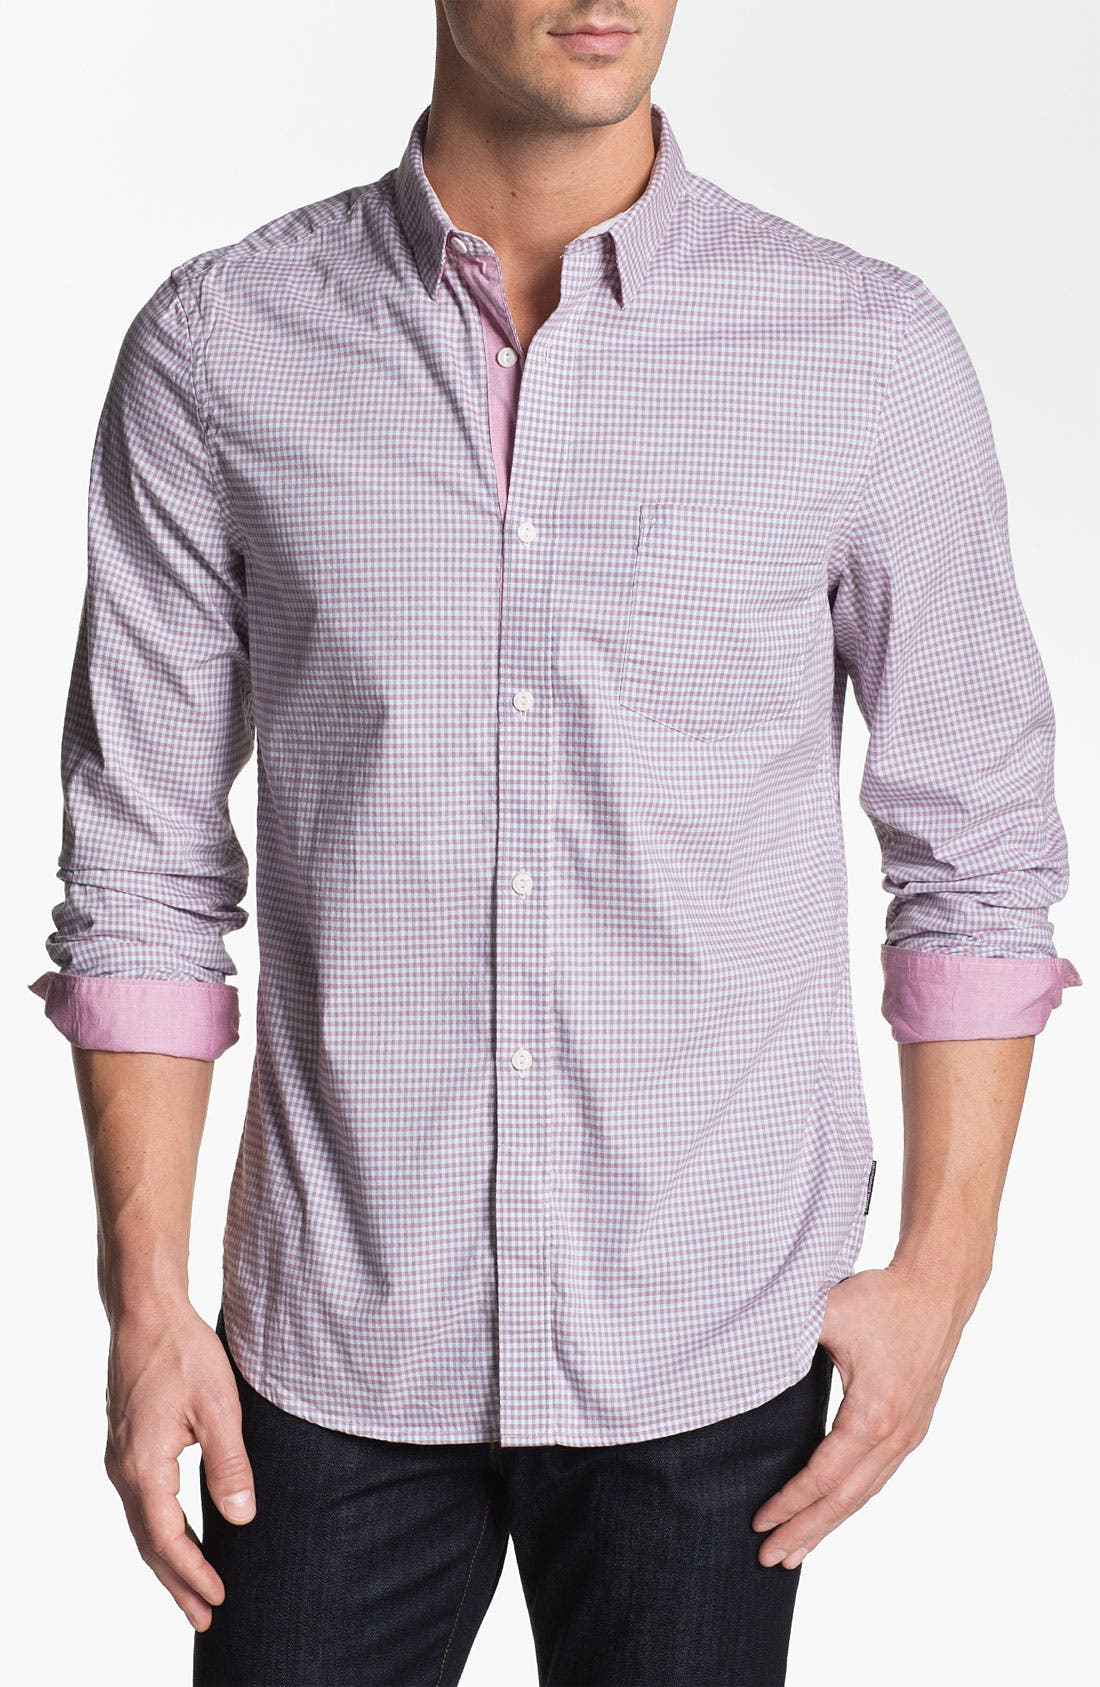 Alternate Image 1 Selected - French Connection 'Wax Job Gingham' Sport Shirt (Online Only)